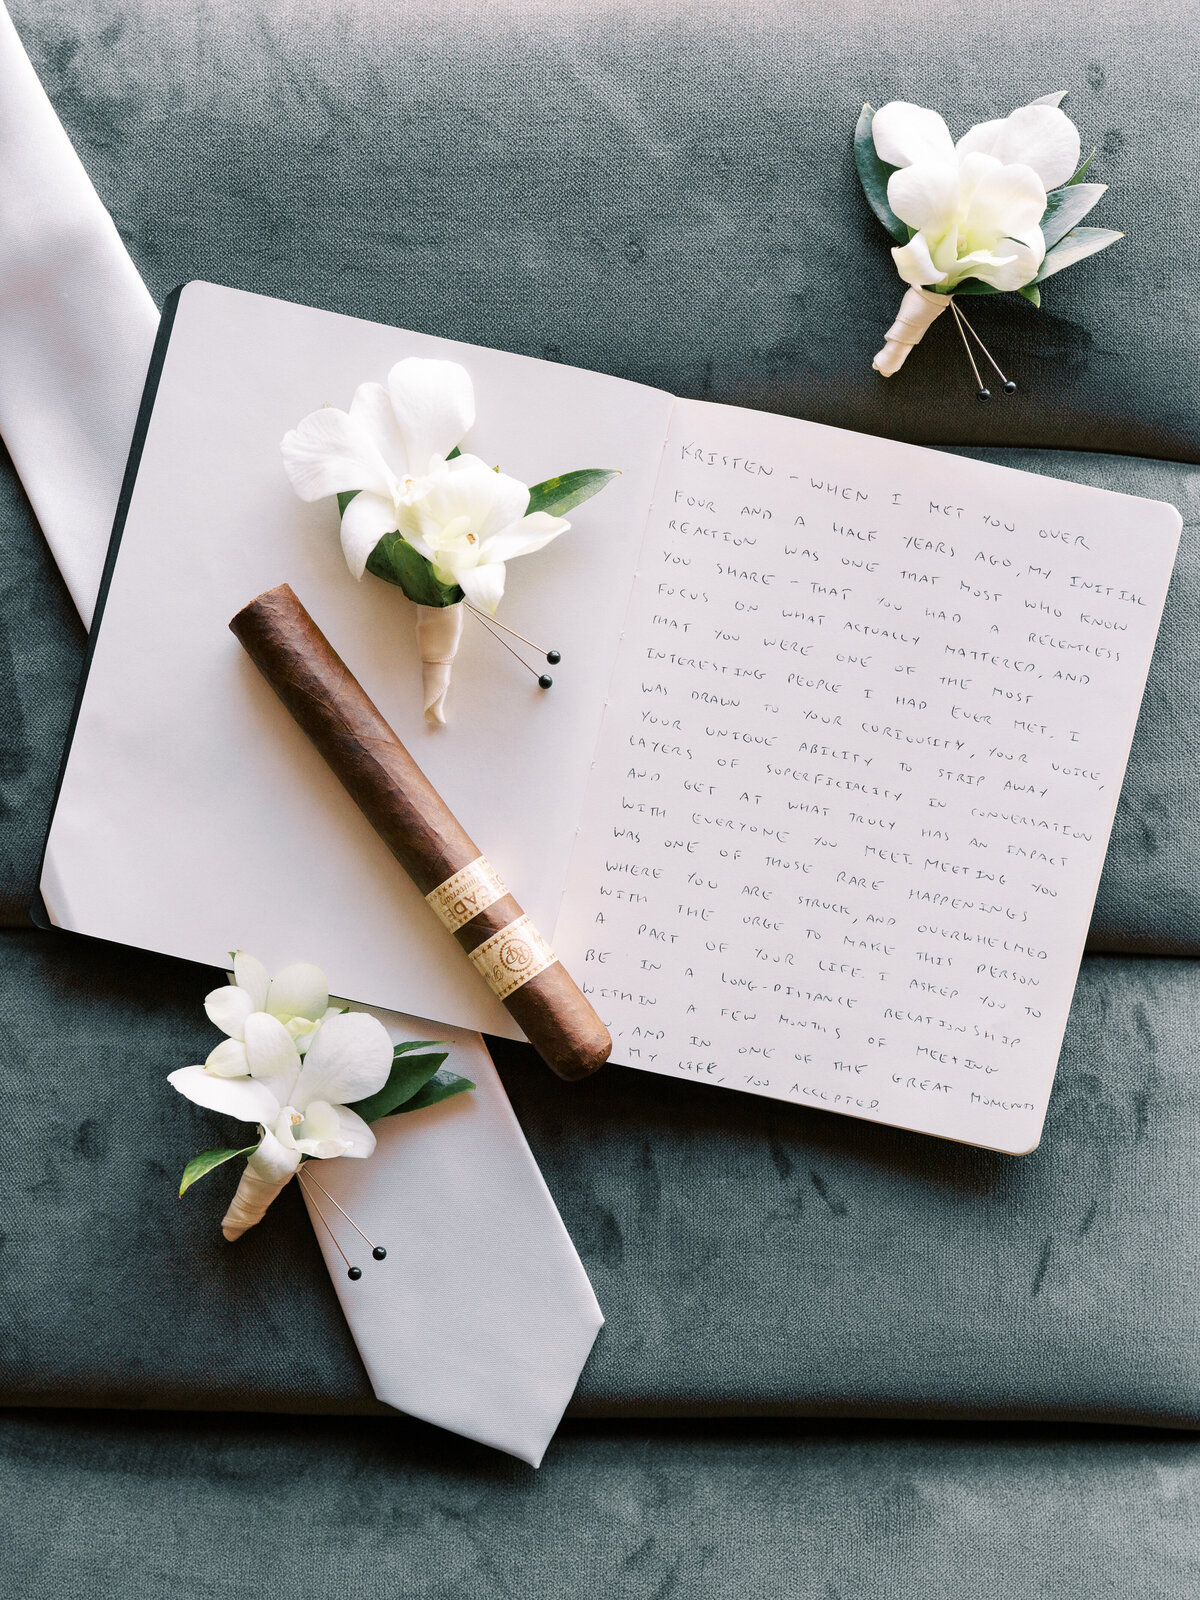 cigar-and-wedding-vows